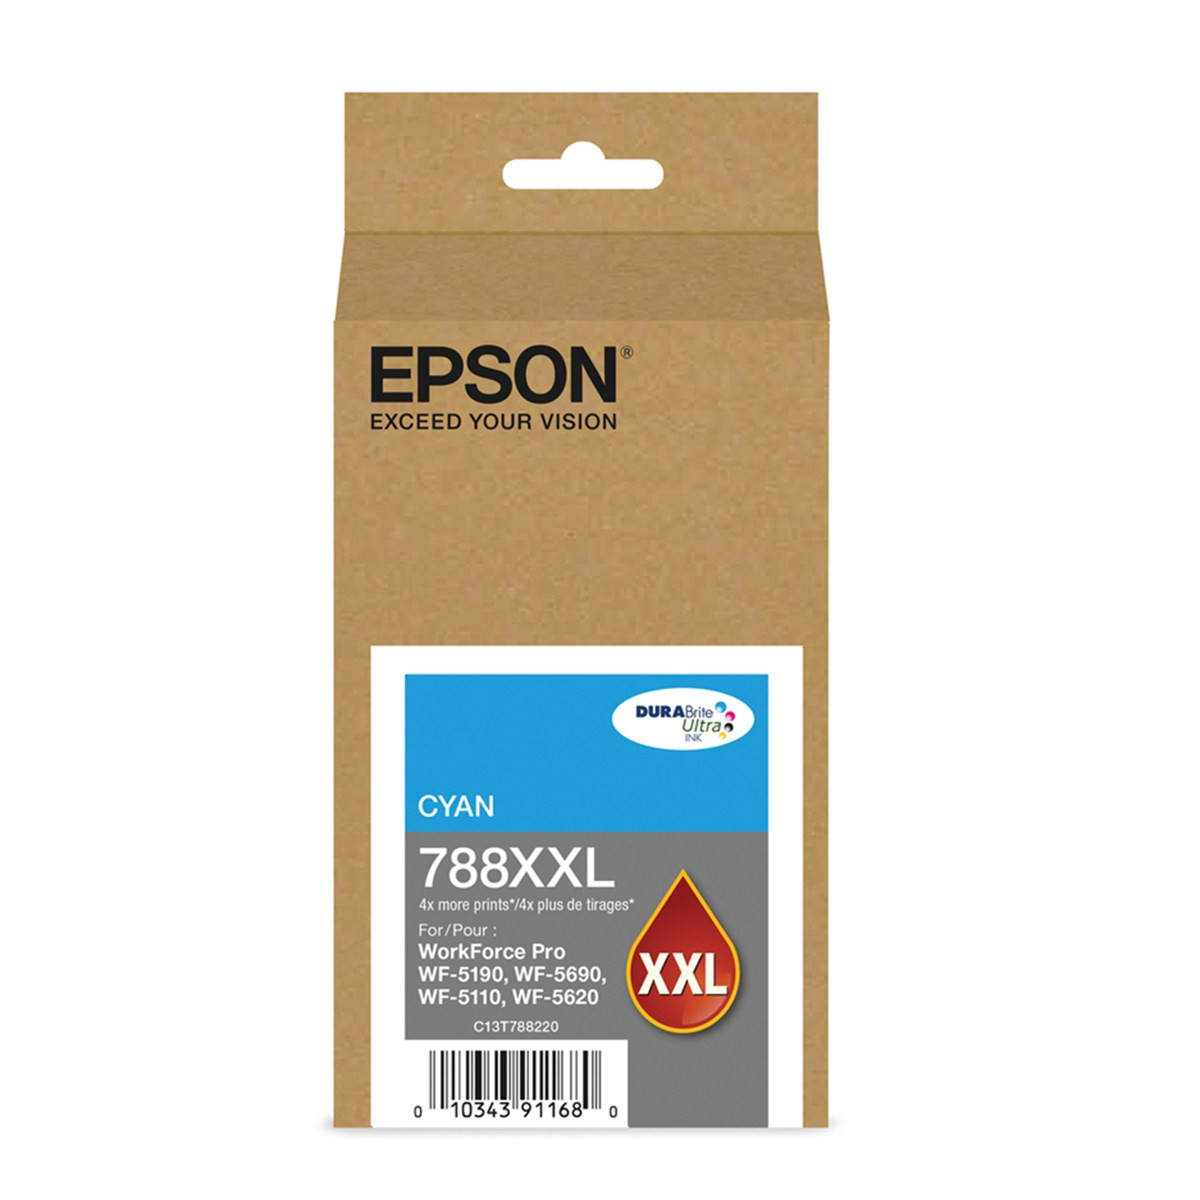 Cartucho de Tinta Epson T788XXL 220-AL Ciano | WorkForce 5190 WorkForce 5690 | Original 34ml